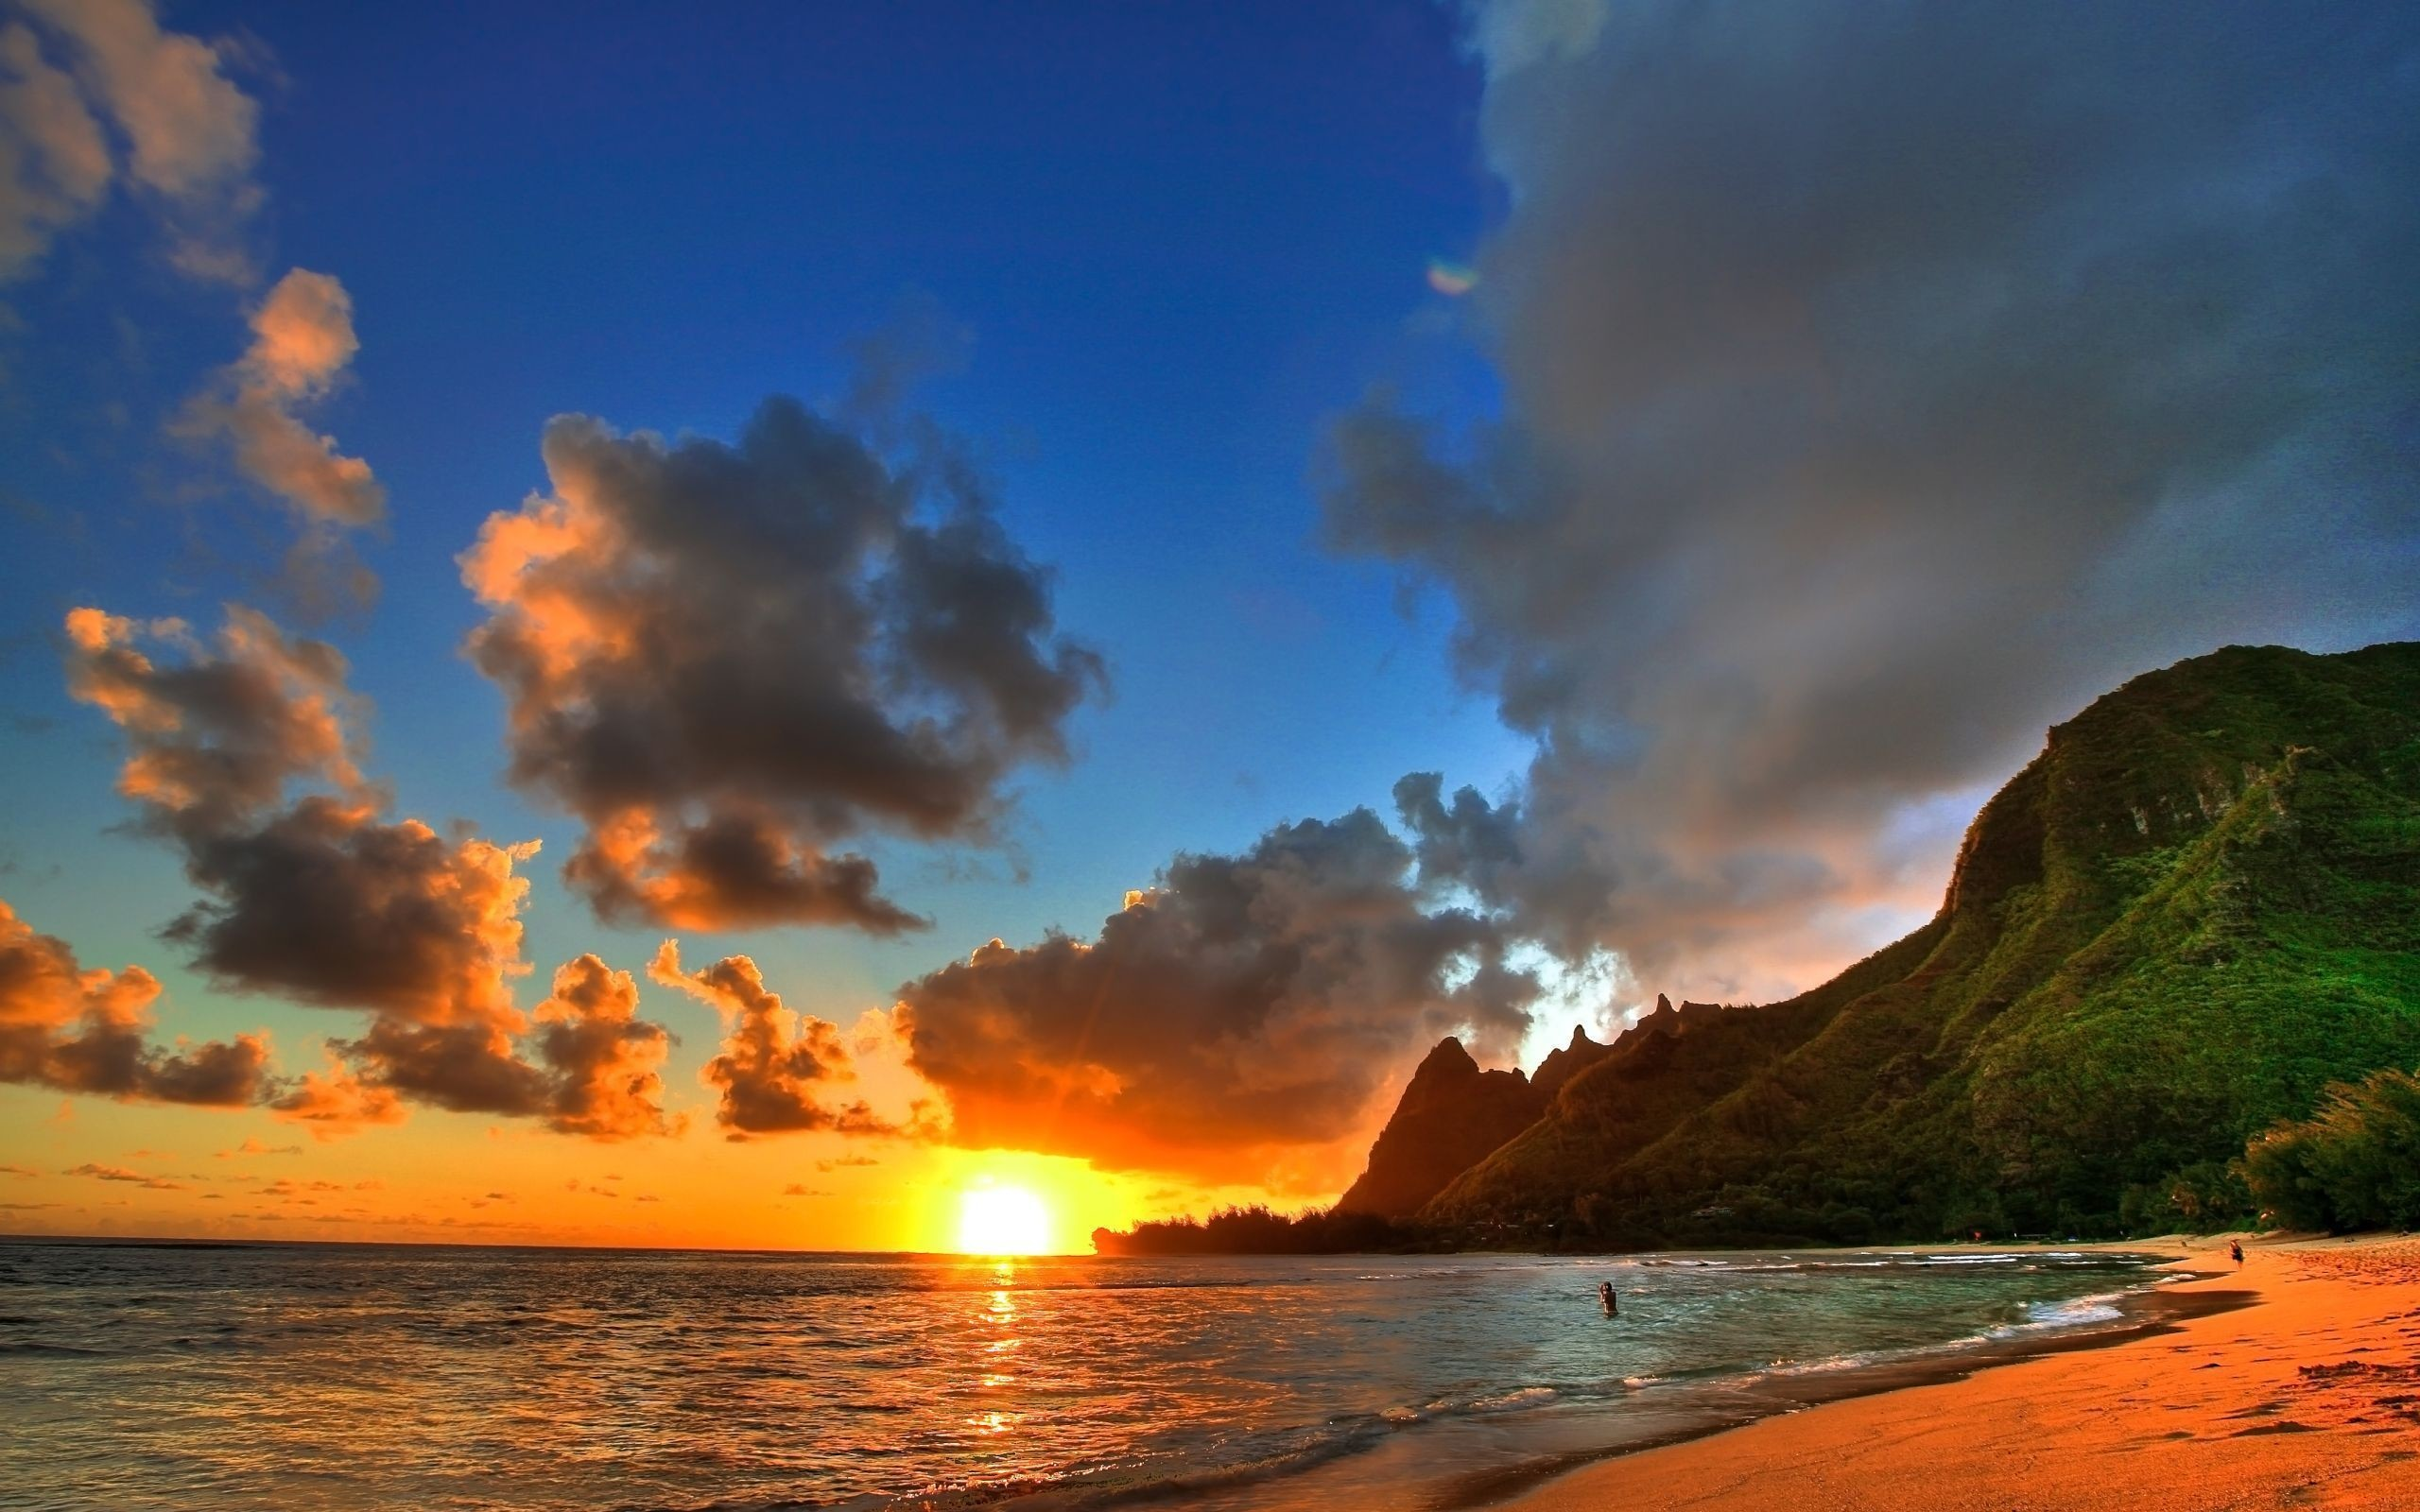 Res: 2560x1600, Hawaii Sunset Wallpaper For Iphone